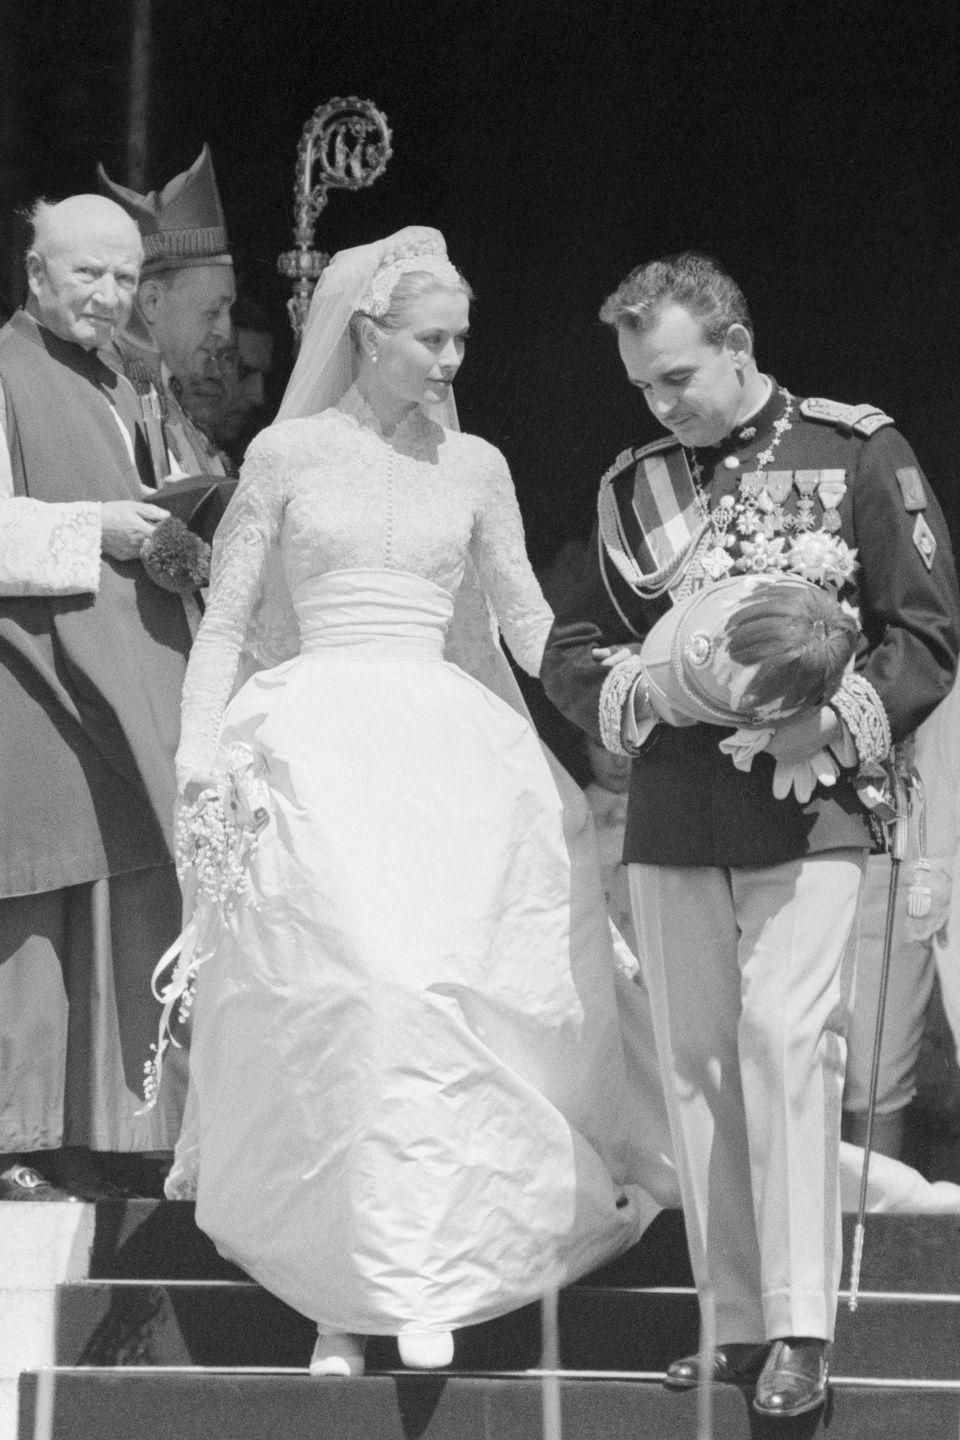 """<p>Prince Rainier III already stood close in height to his fiancee, so the bride wore just 2½-inch heels. <a href=""""http://www.philamuseum.org/collections/permanent/56623.html?mulR=488651013